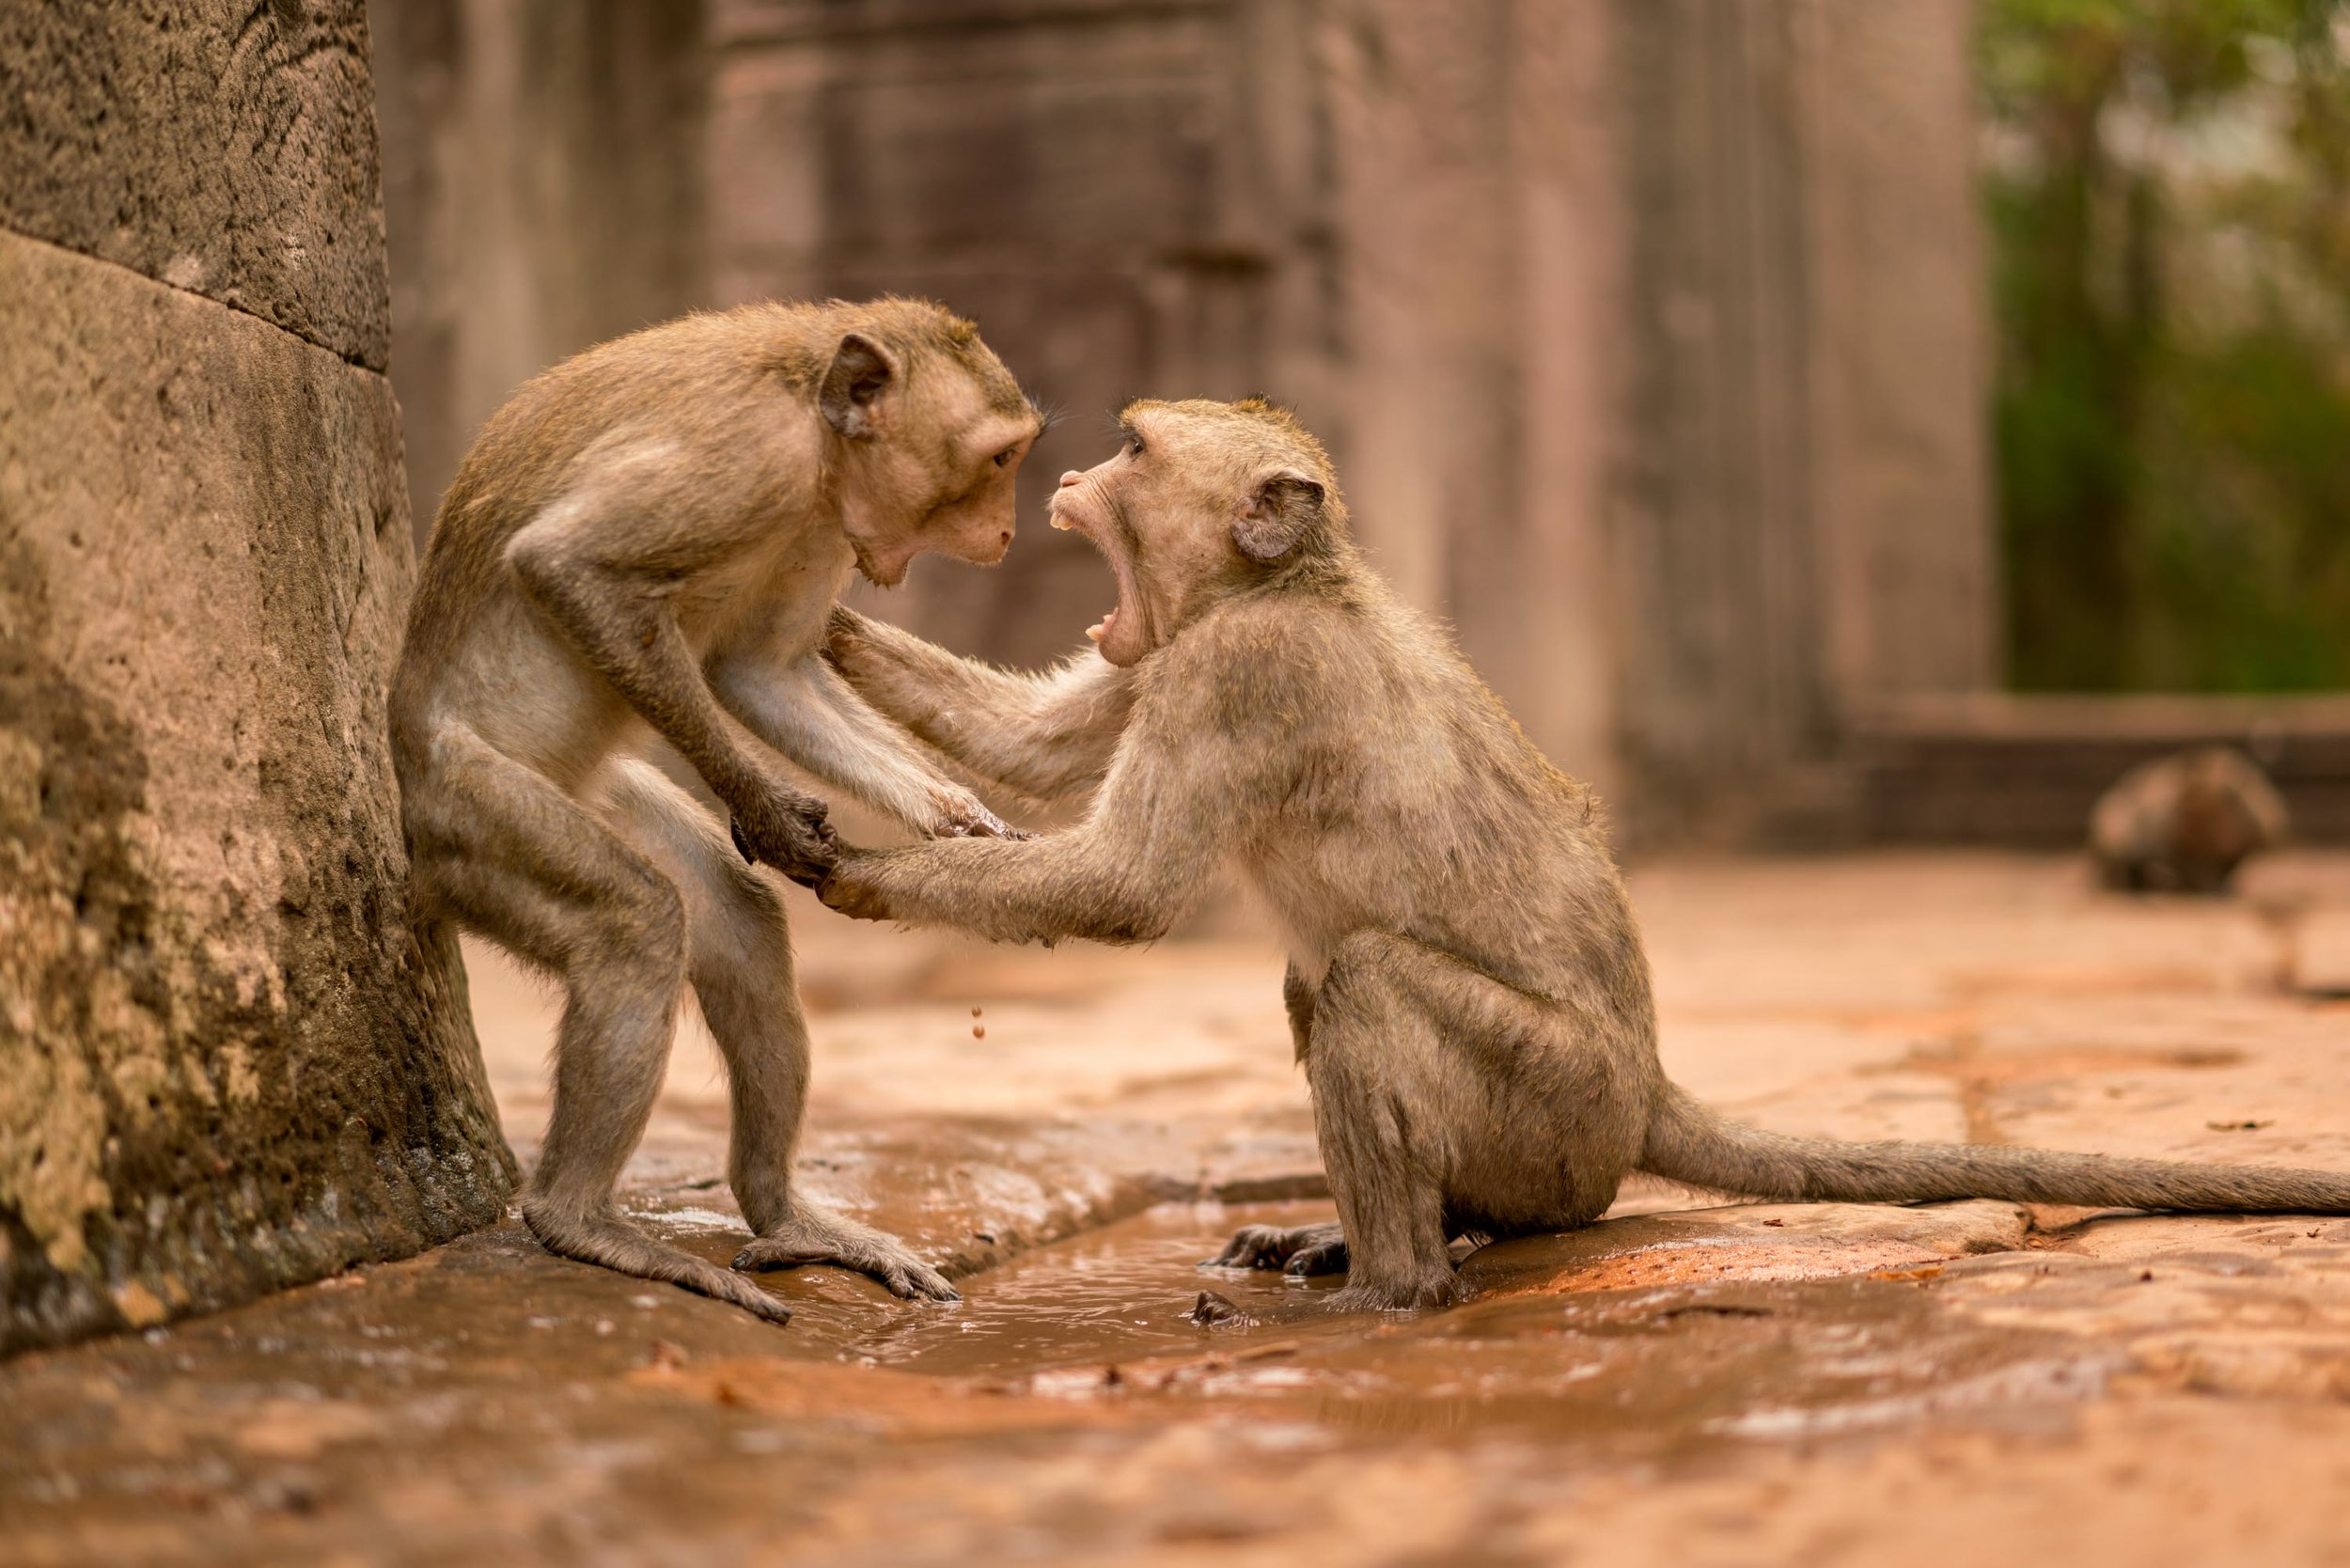 Monkey Fight, Cambodia